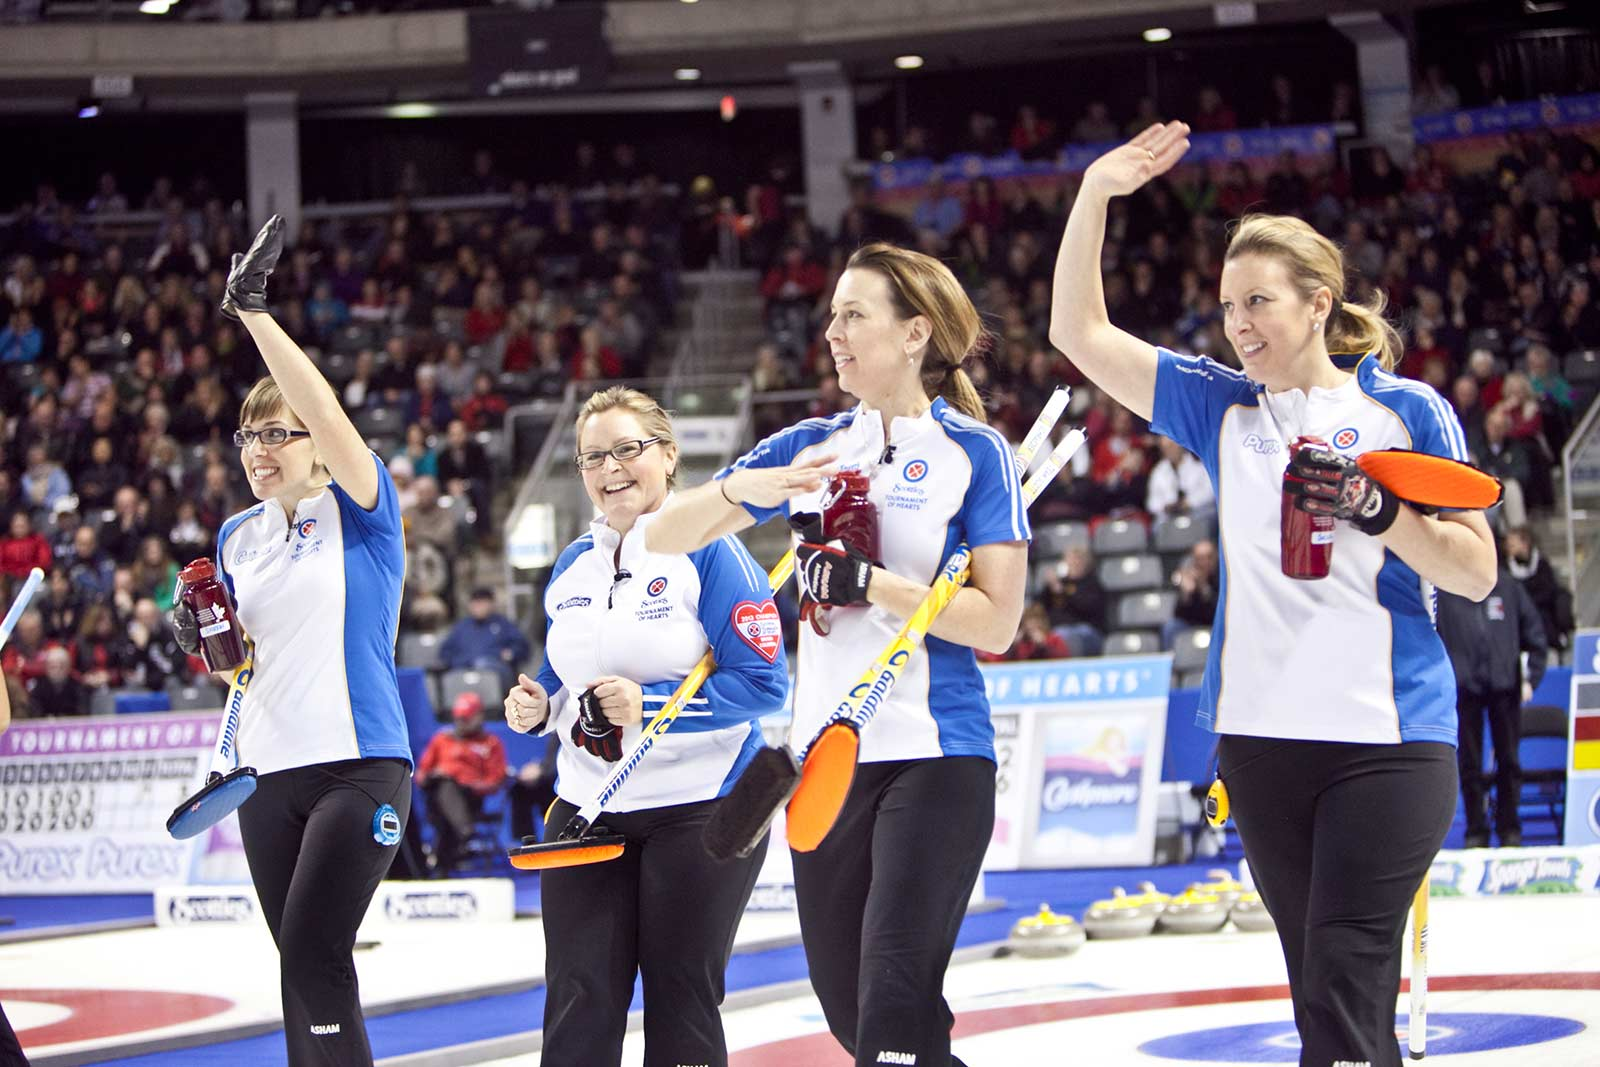 Team Scott's final game at the 2013 Scotties Tournament of Hearts